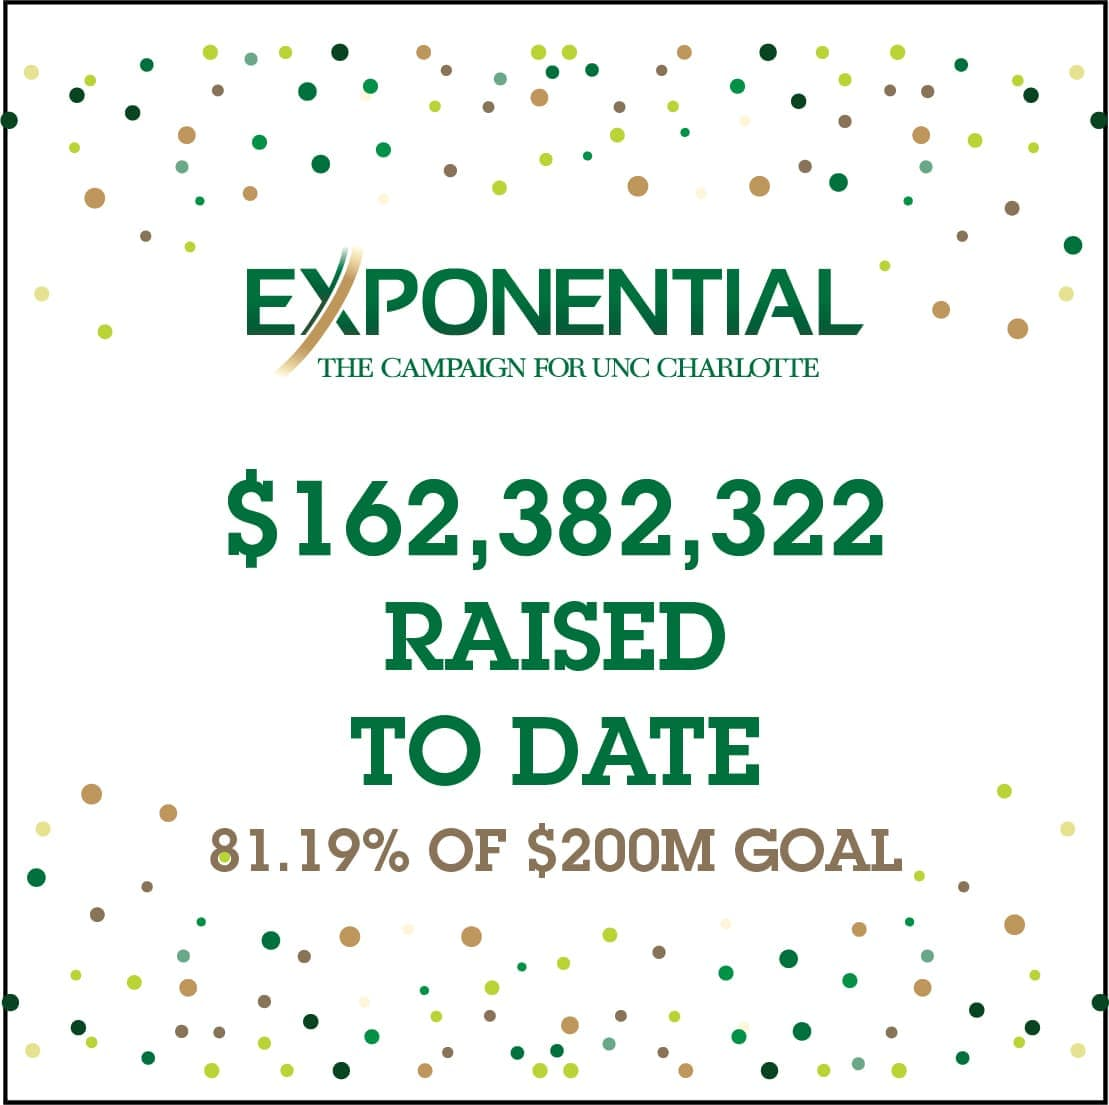 Exponential: $162,382,322 raised to date - 81.19% of $200M goal